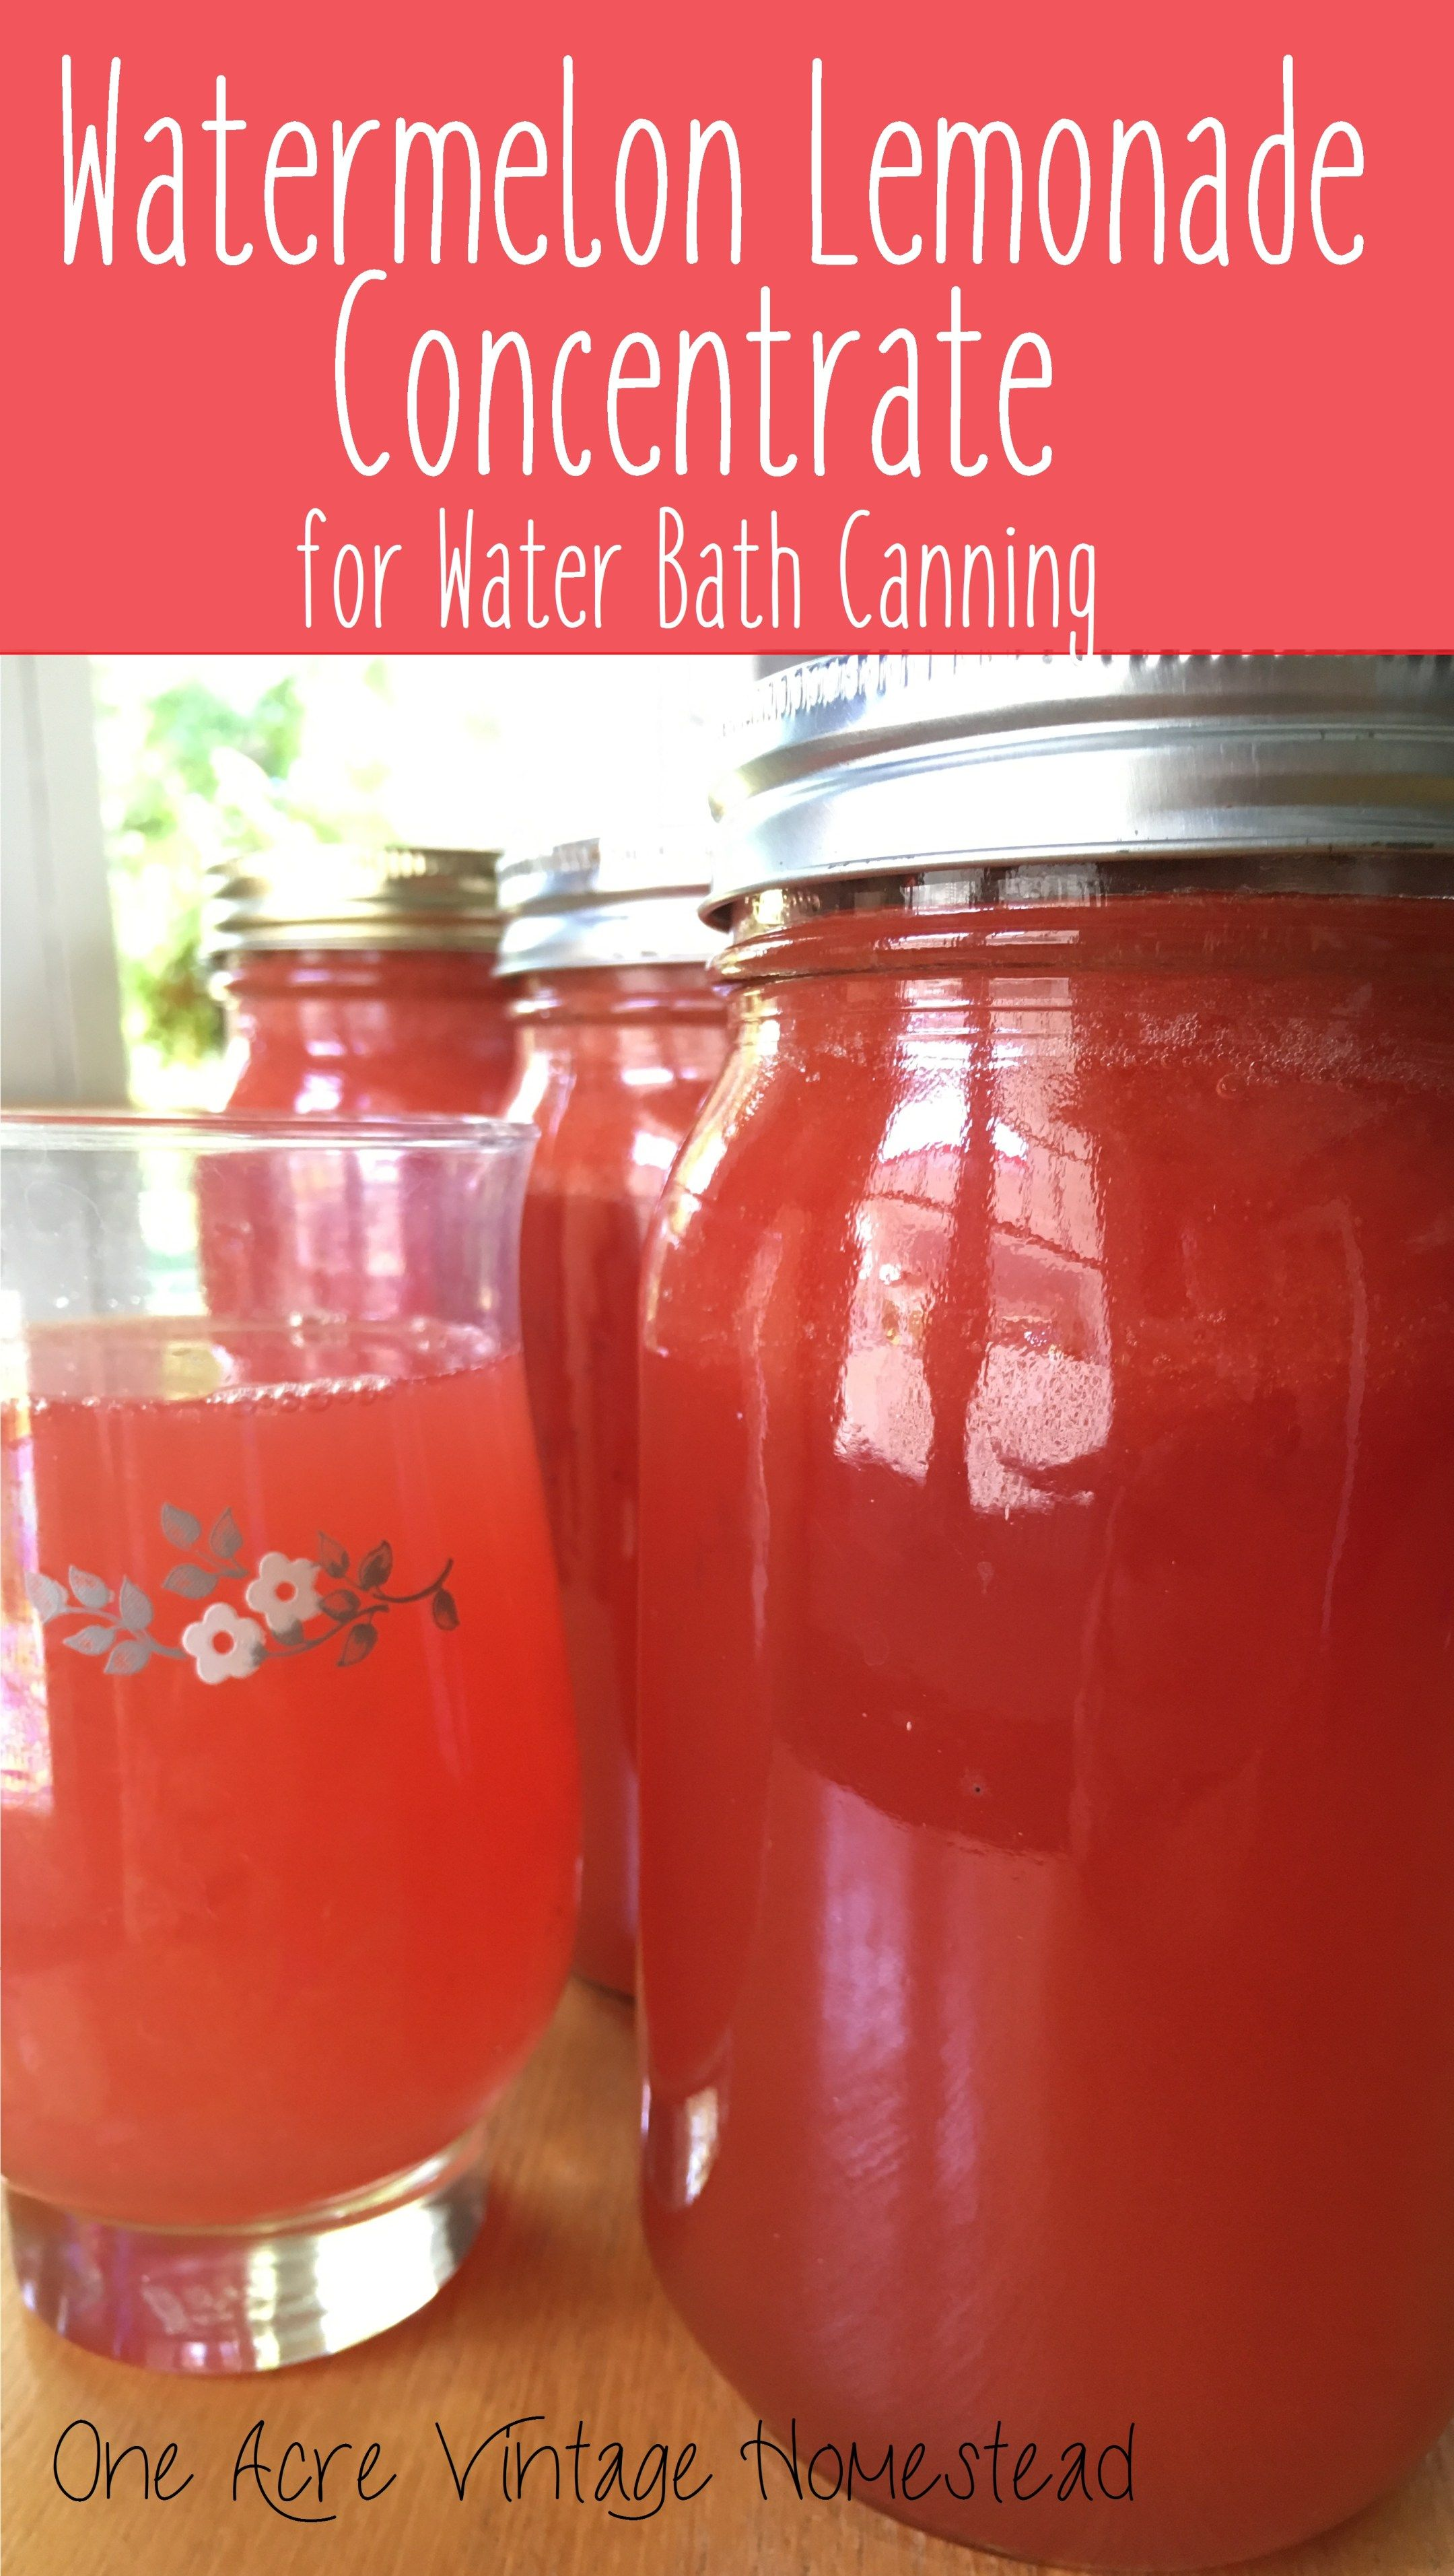 Watermelon Lemonade Concentrate A Water Bath Canning Food Preservation Recipe Recipe Canning Food Preservation Water Bath Canning Recipes Lemonade Concentrate